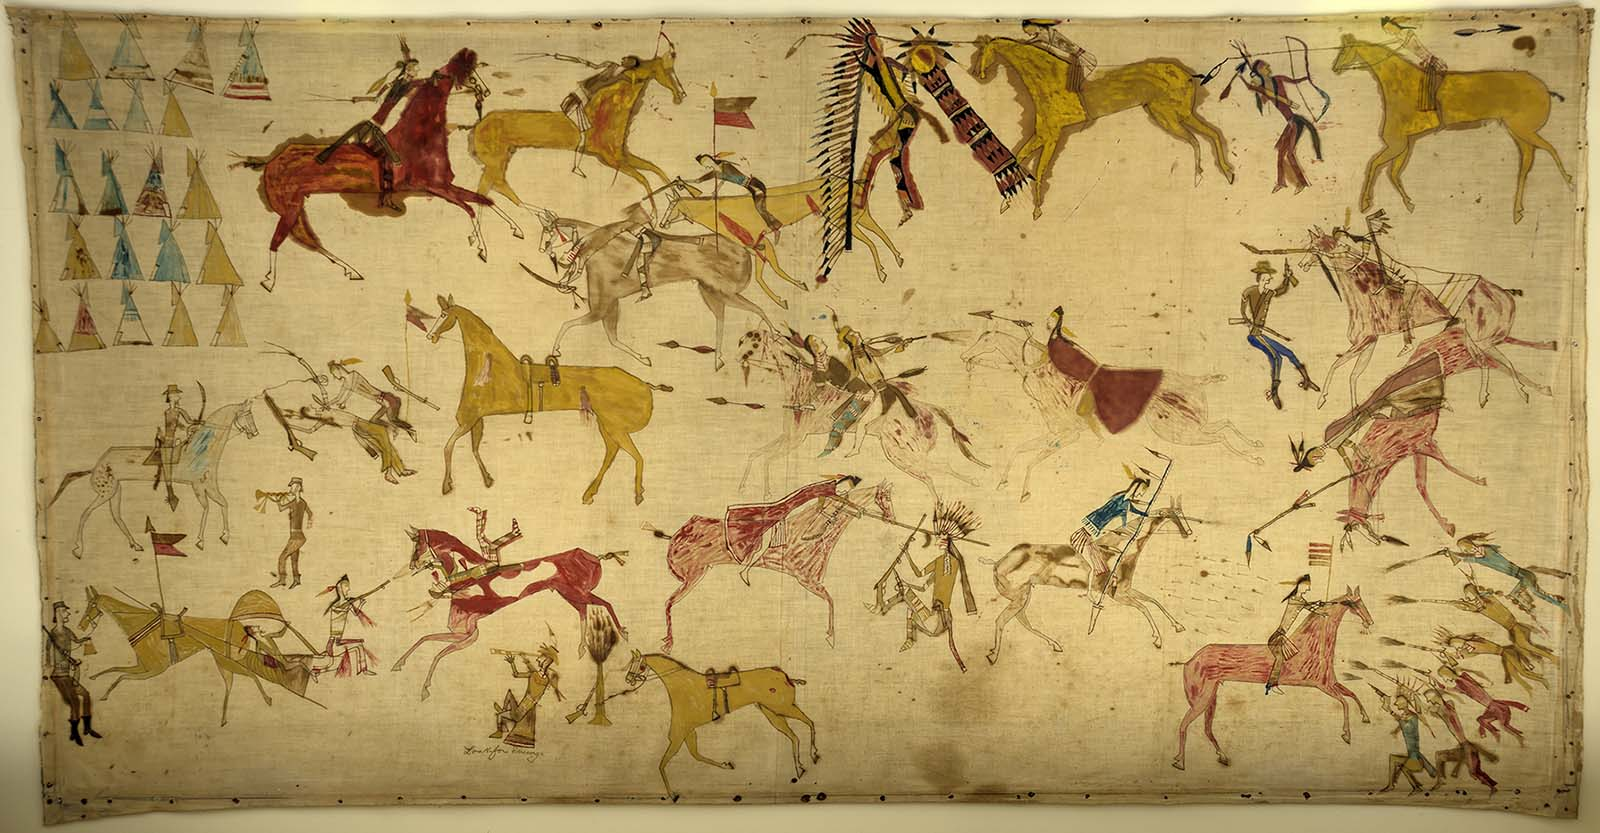 Mee-nah-tsee-us (White Swan) (ca. 1851-1904). Apsaalooke (Crow), Montana. Painting, ca. 1887. Muslin, pencil, ink, watercolor, 37.25 x 70.5 inches. The Paul Dyck Plains Indian Buffalo Culture Collection, acquired through the generosity of the Dyck family and additional gifts of the Nielson Family and the Estate of Margaret S. Coe. NA.702.40